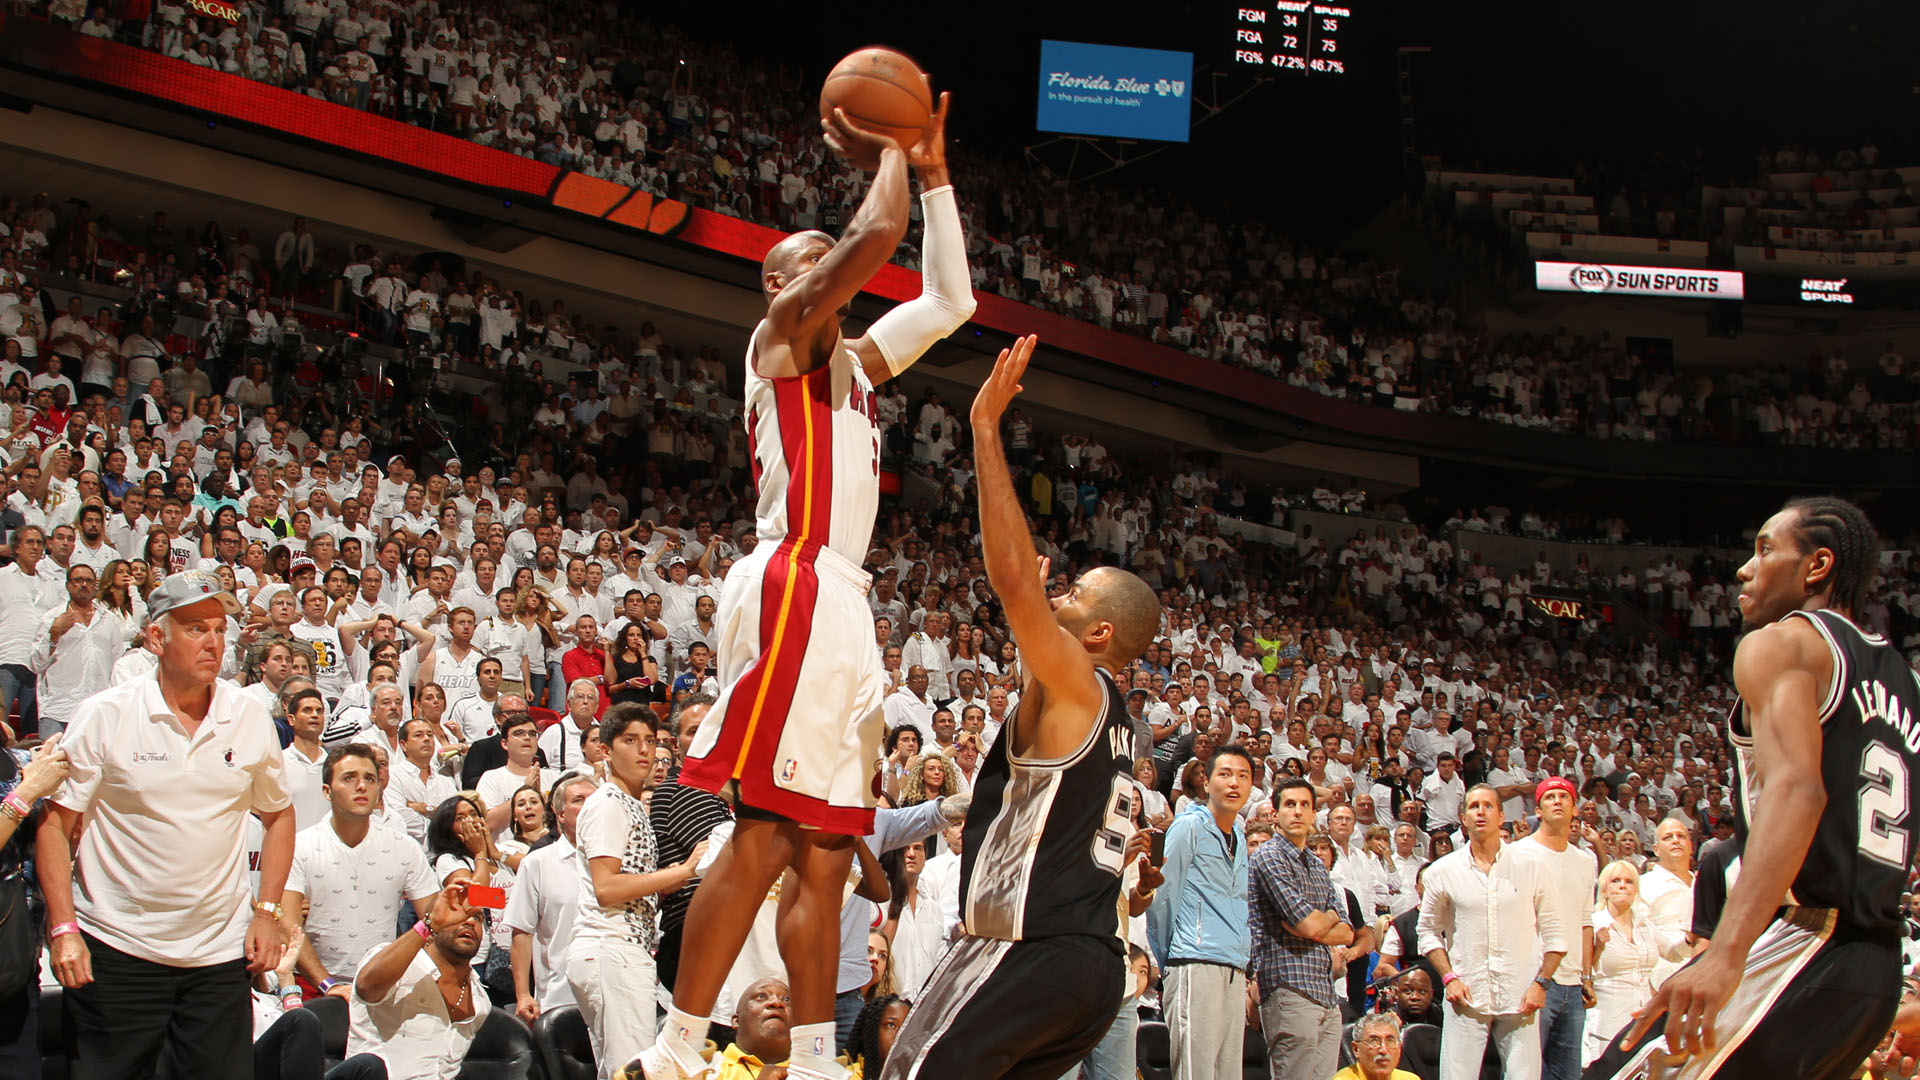 Top Moments: Ray Allen's clutch 3 in Game 6 of NBA Finals